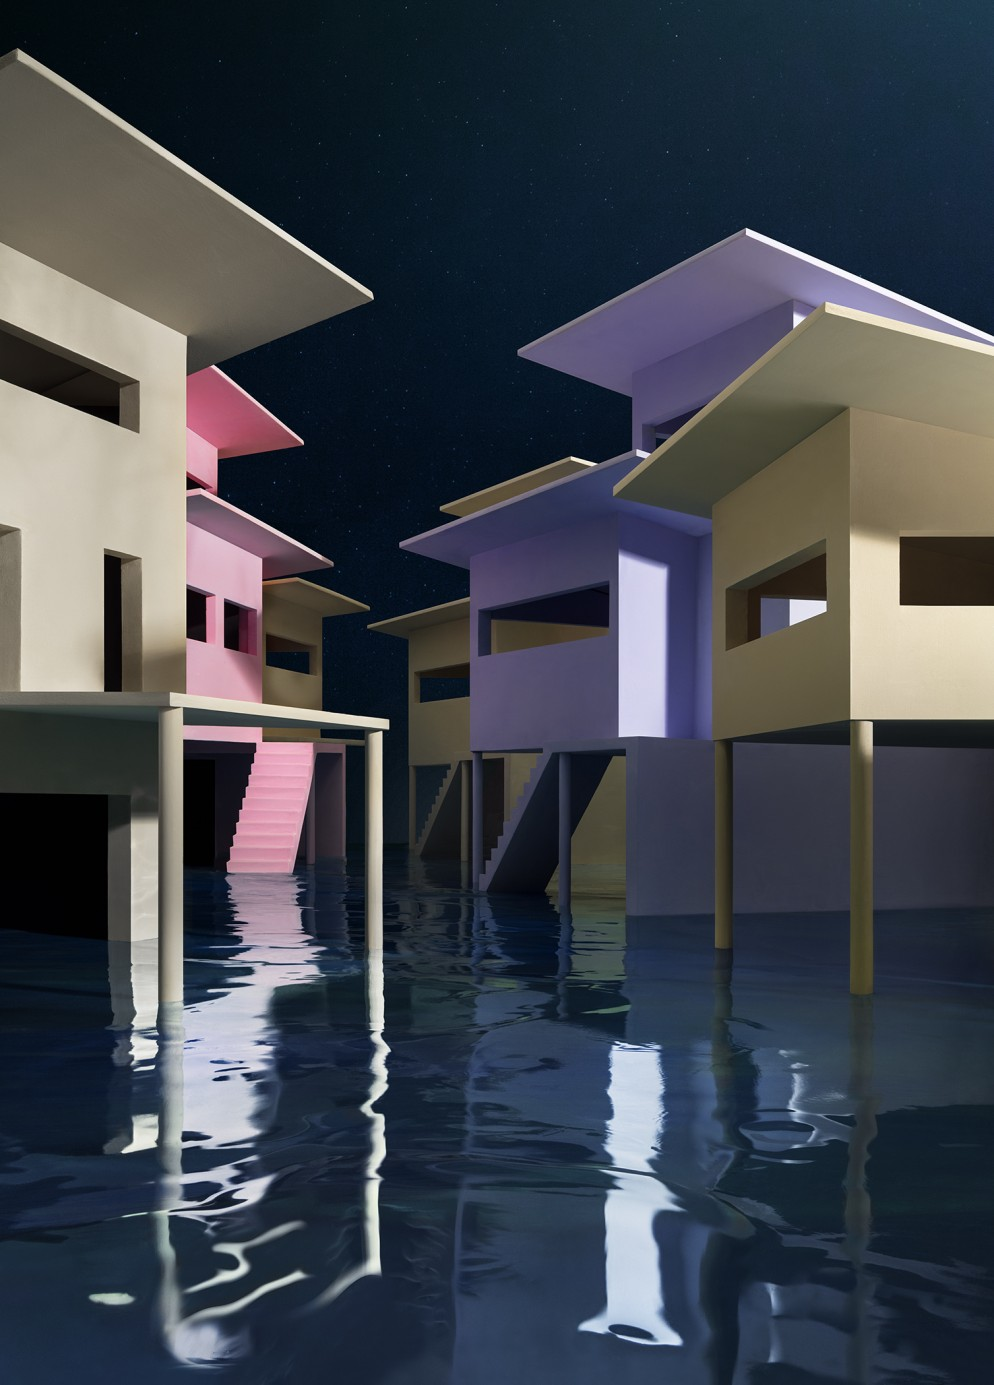 CASEBERE_Flooded Streets_2019_Copyright of the artist_Courtesy Galerie Templon Paris Brussels